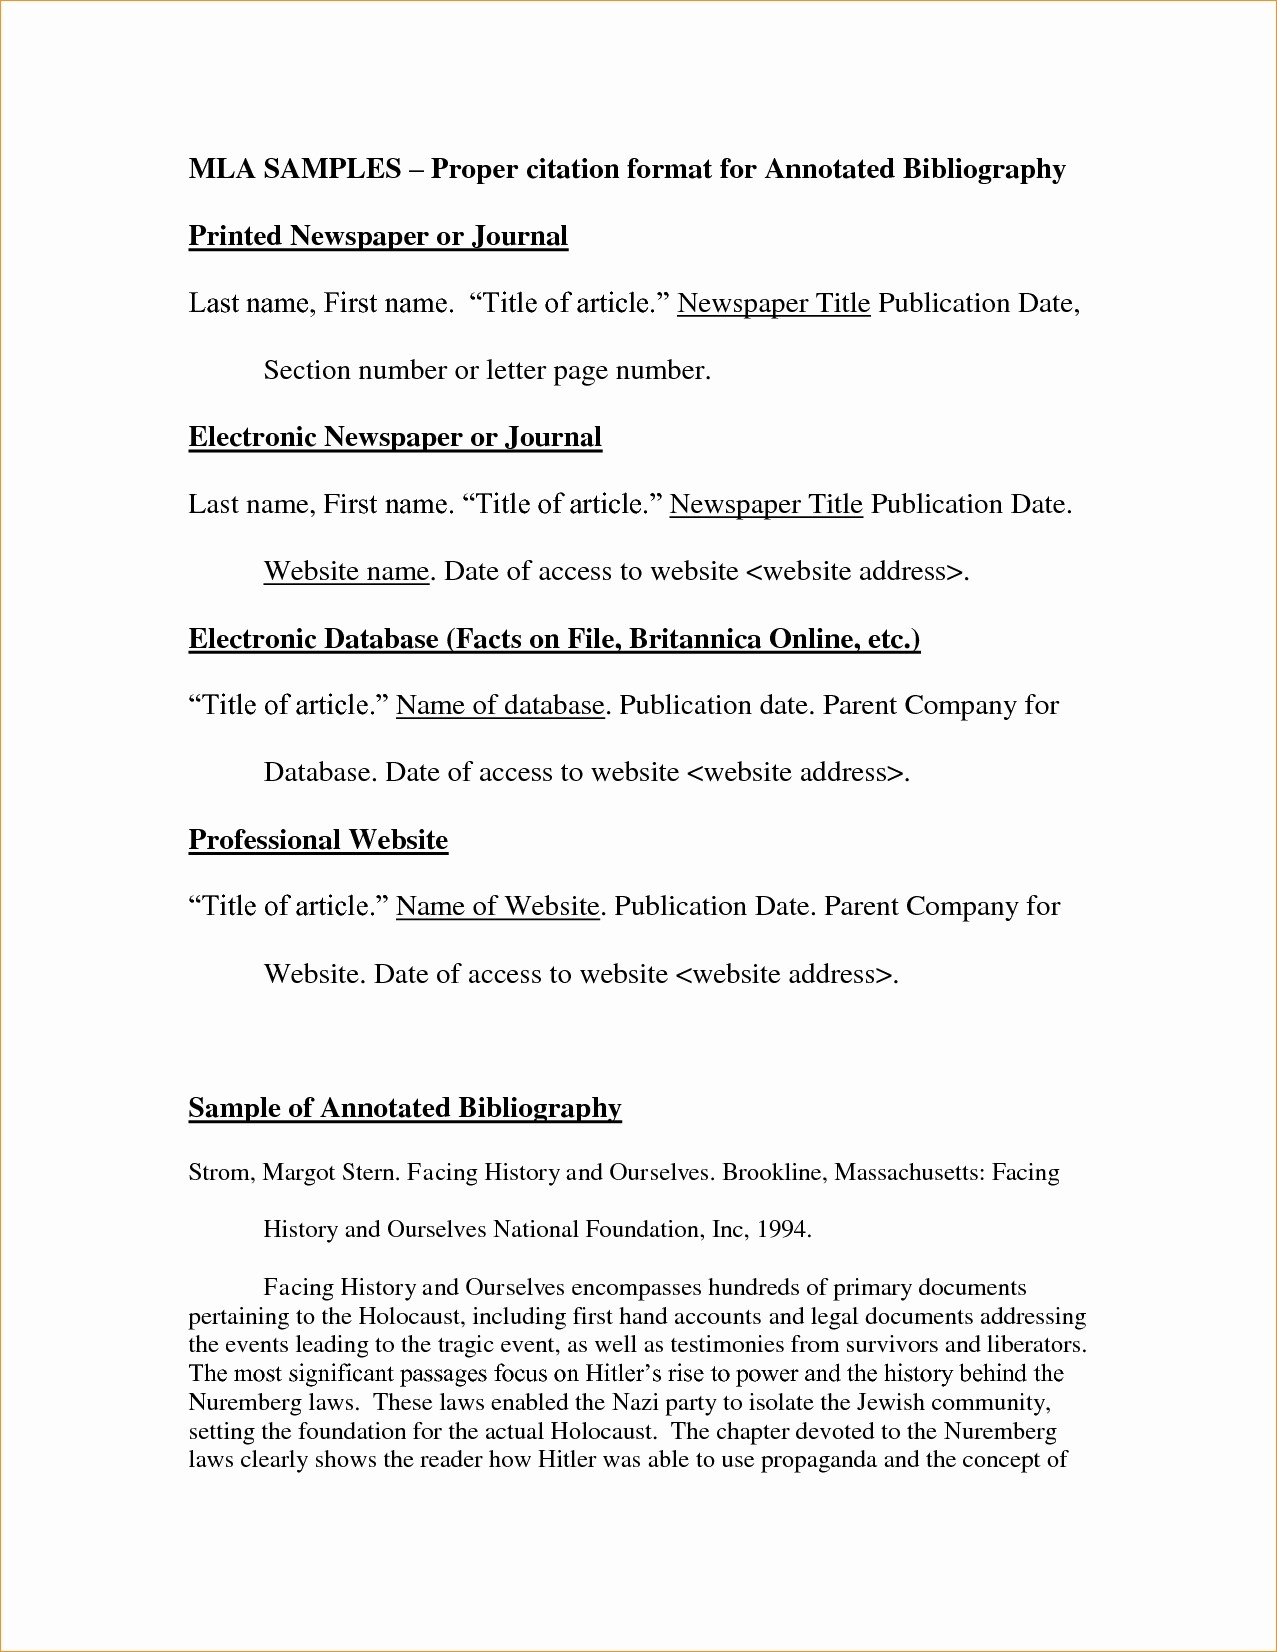 022 Essay Example Mla First Page After The Title Apa Outline Correct Format Citing Letter Best Formatted Awesome Cit Unique Proper Pdf Paper College Argumentative Full